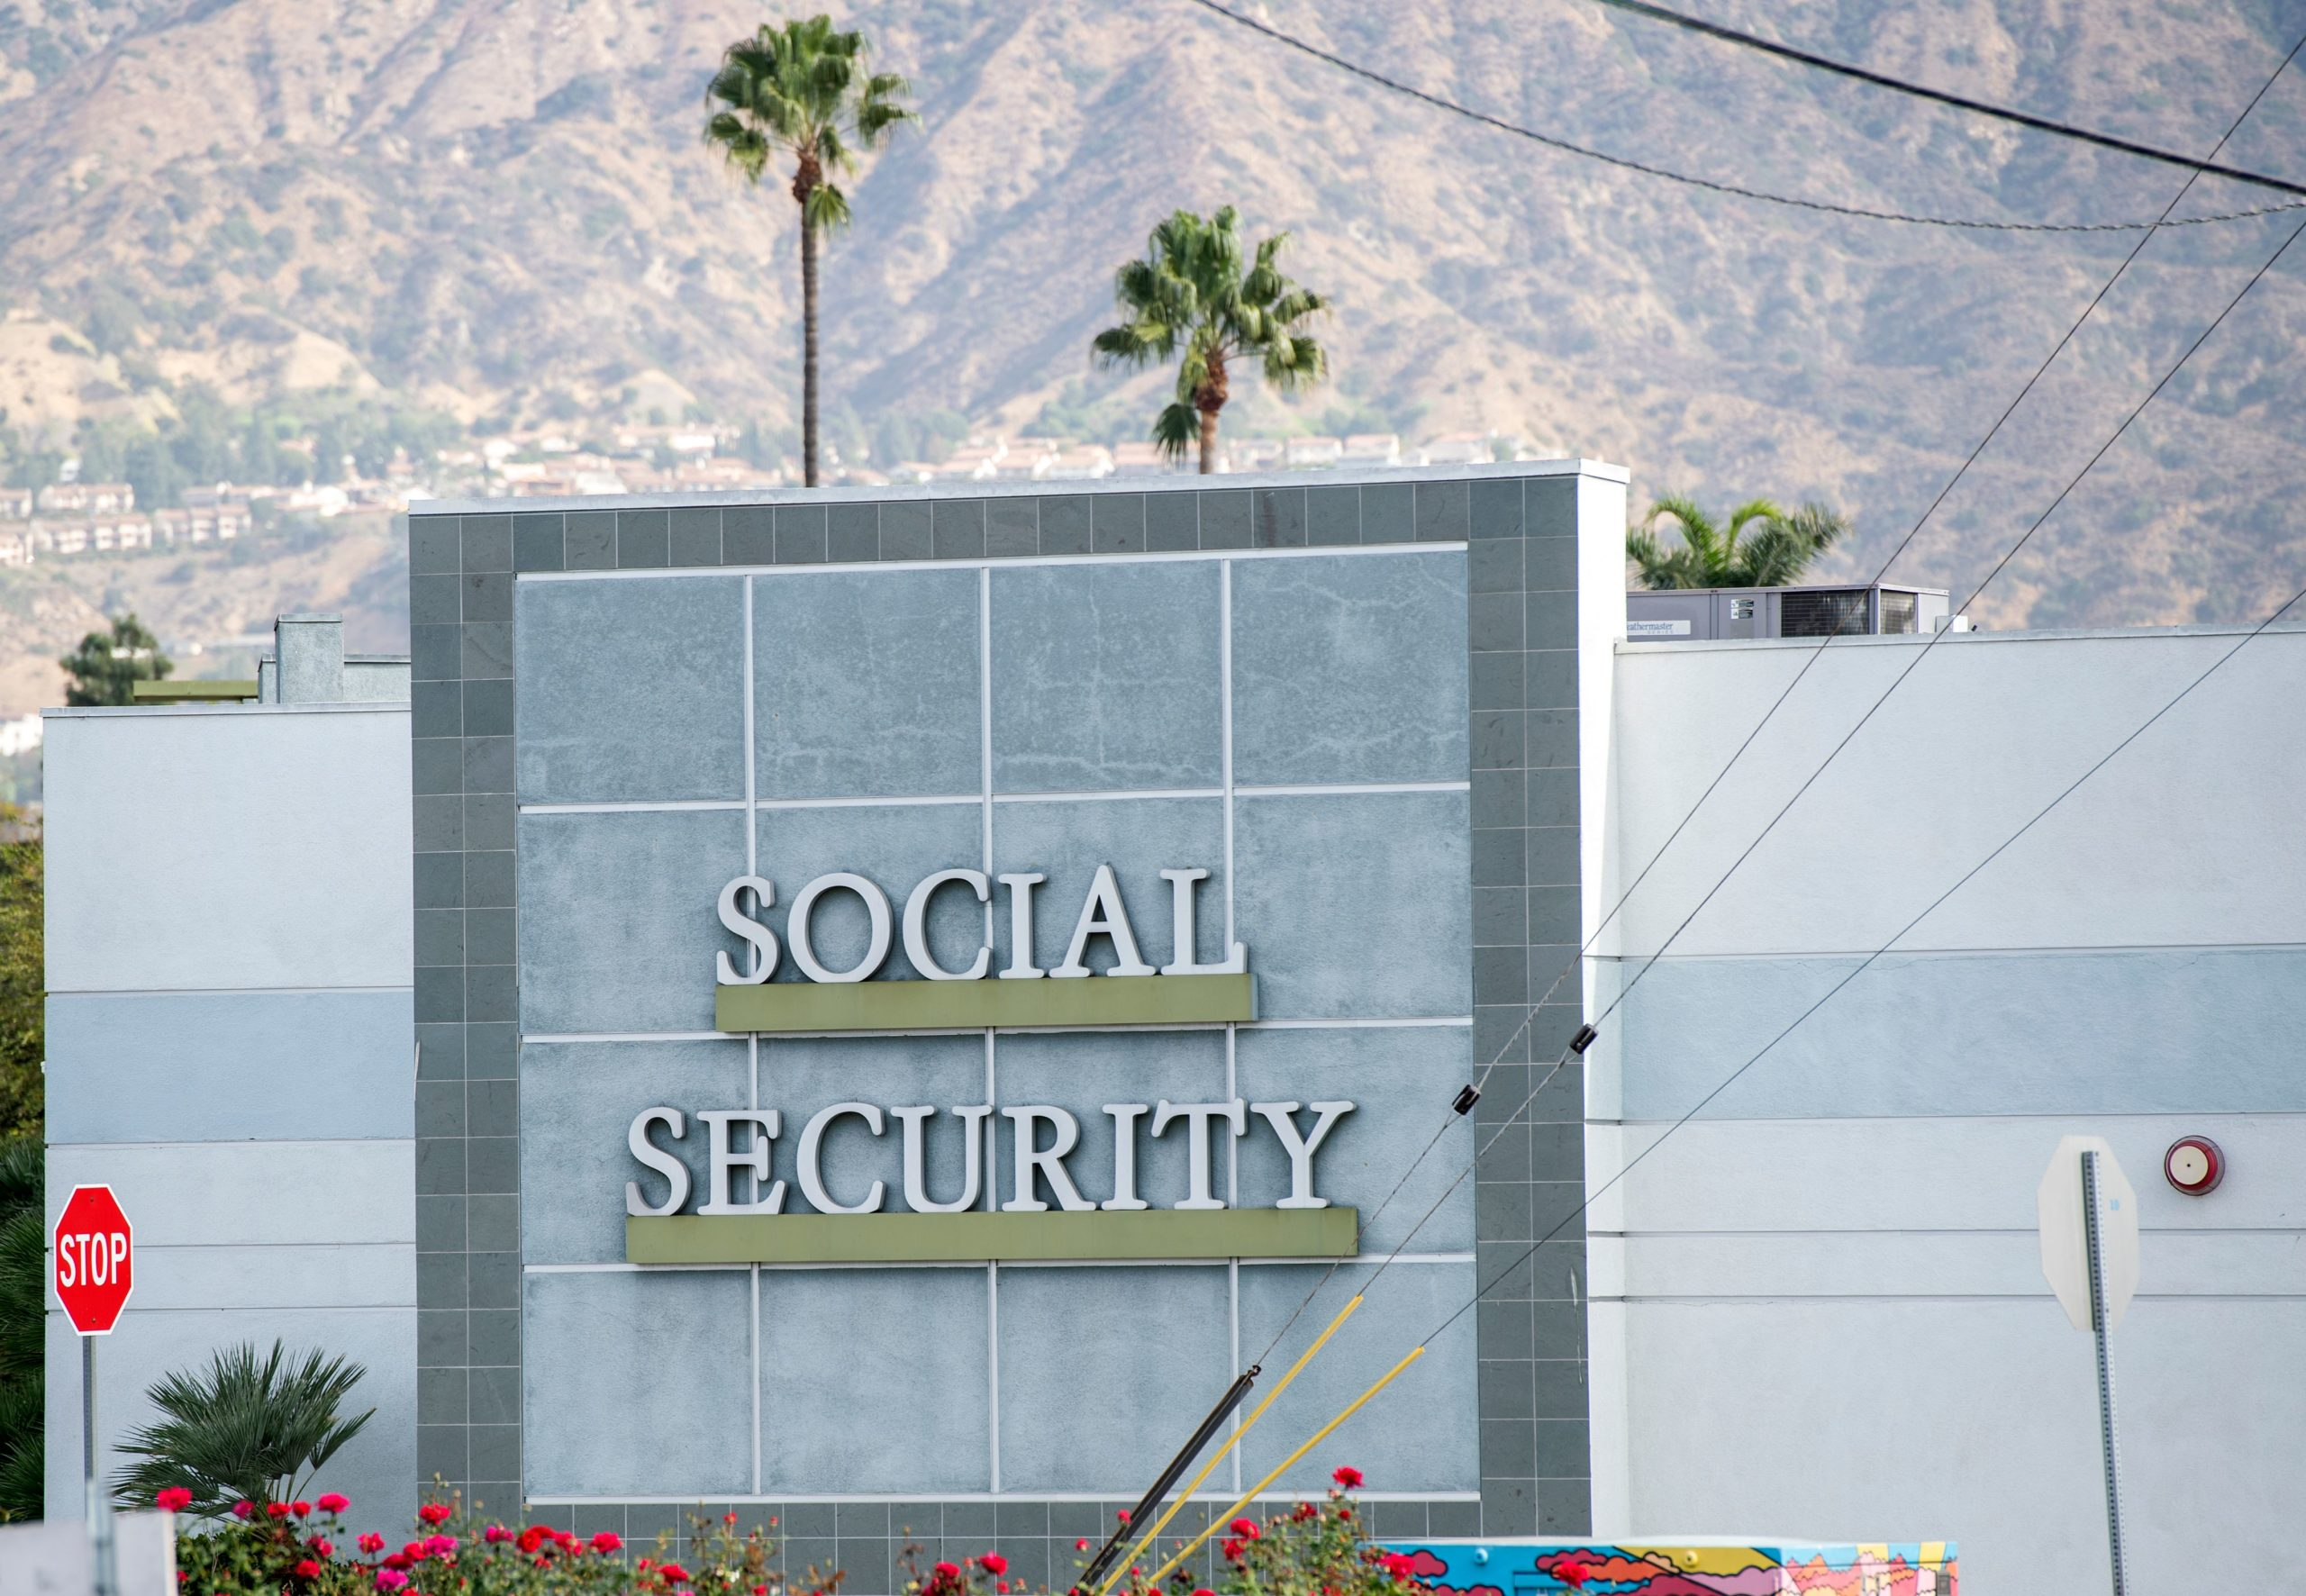 A sign is seen outside a Social Security Administration building on Nov. 5, 2020 in Burbank, California. (Valerie Macon/AFP via Getty Images)